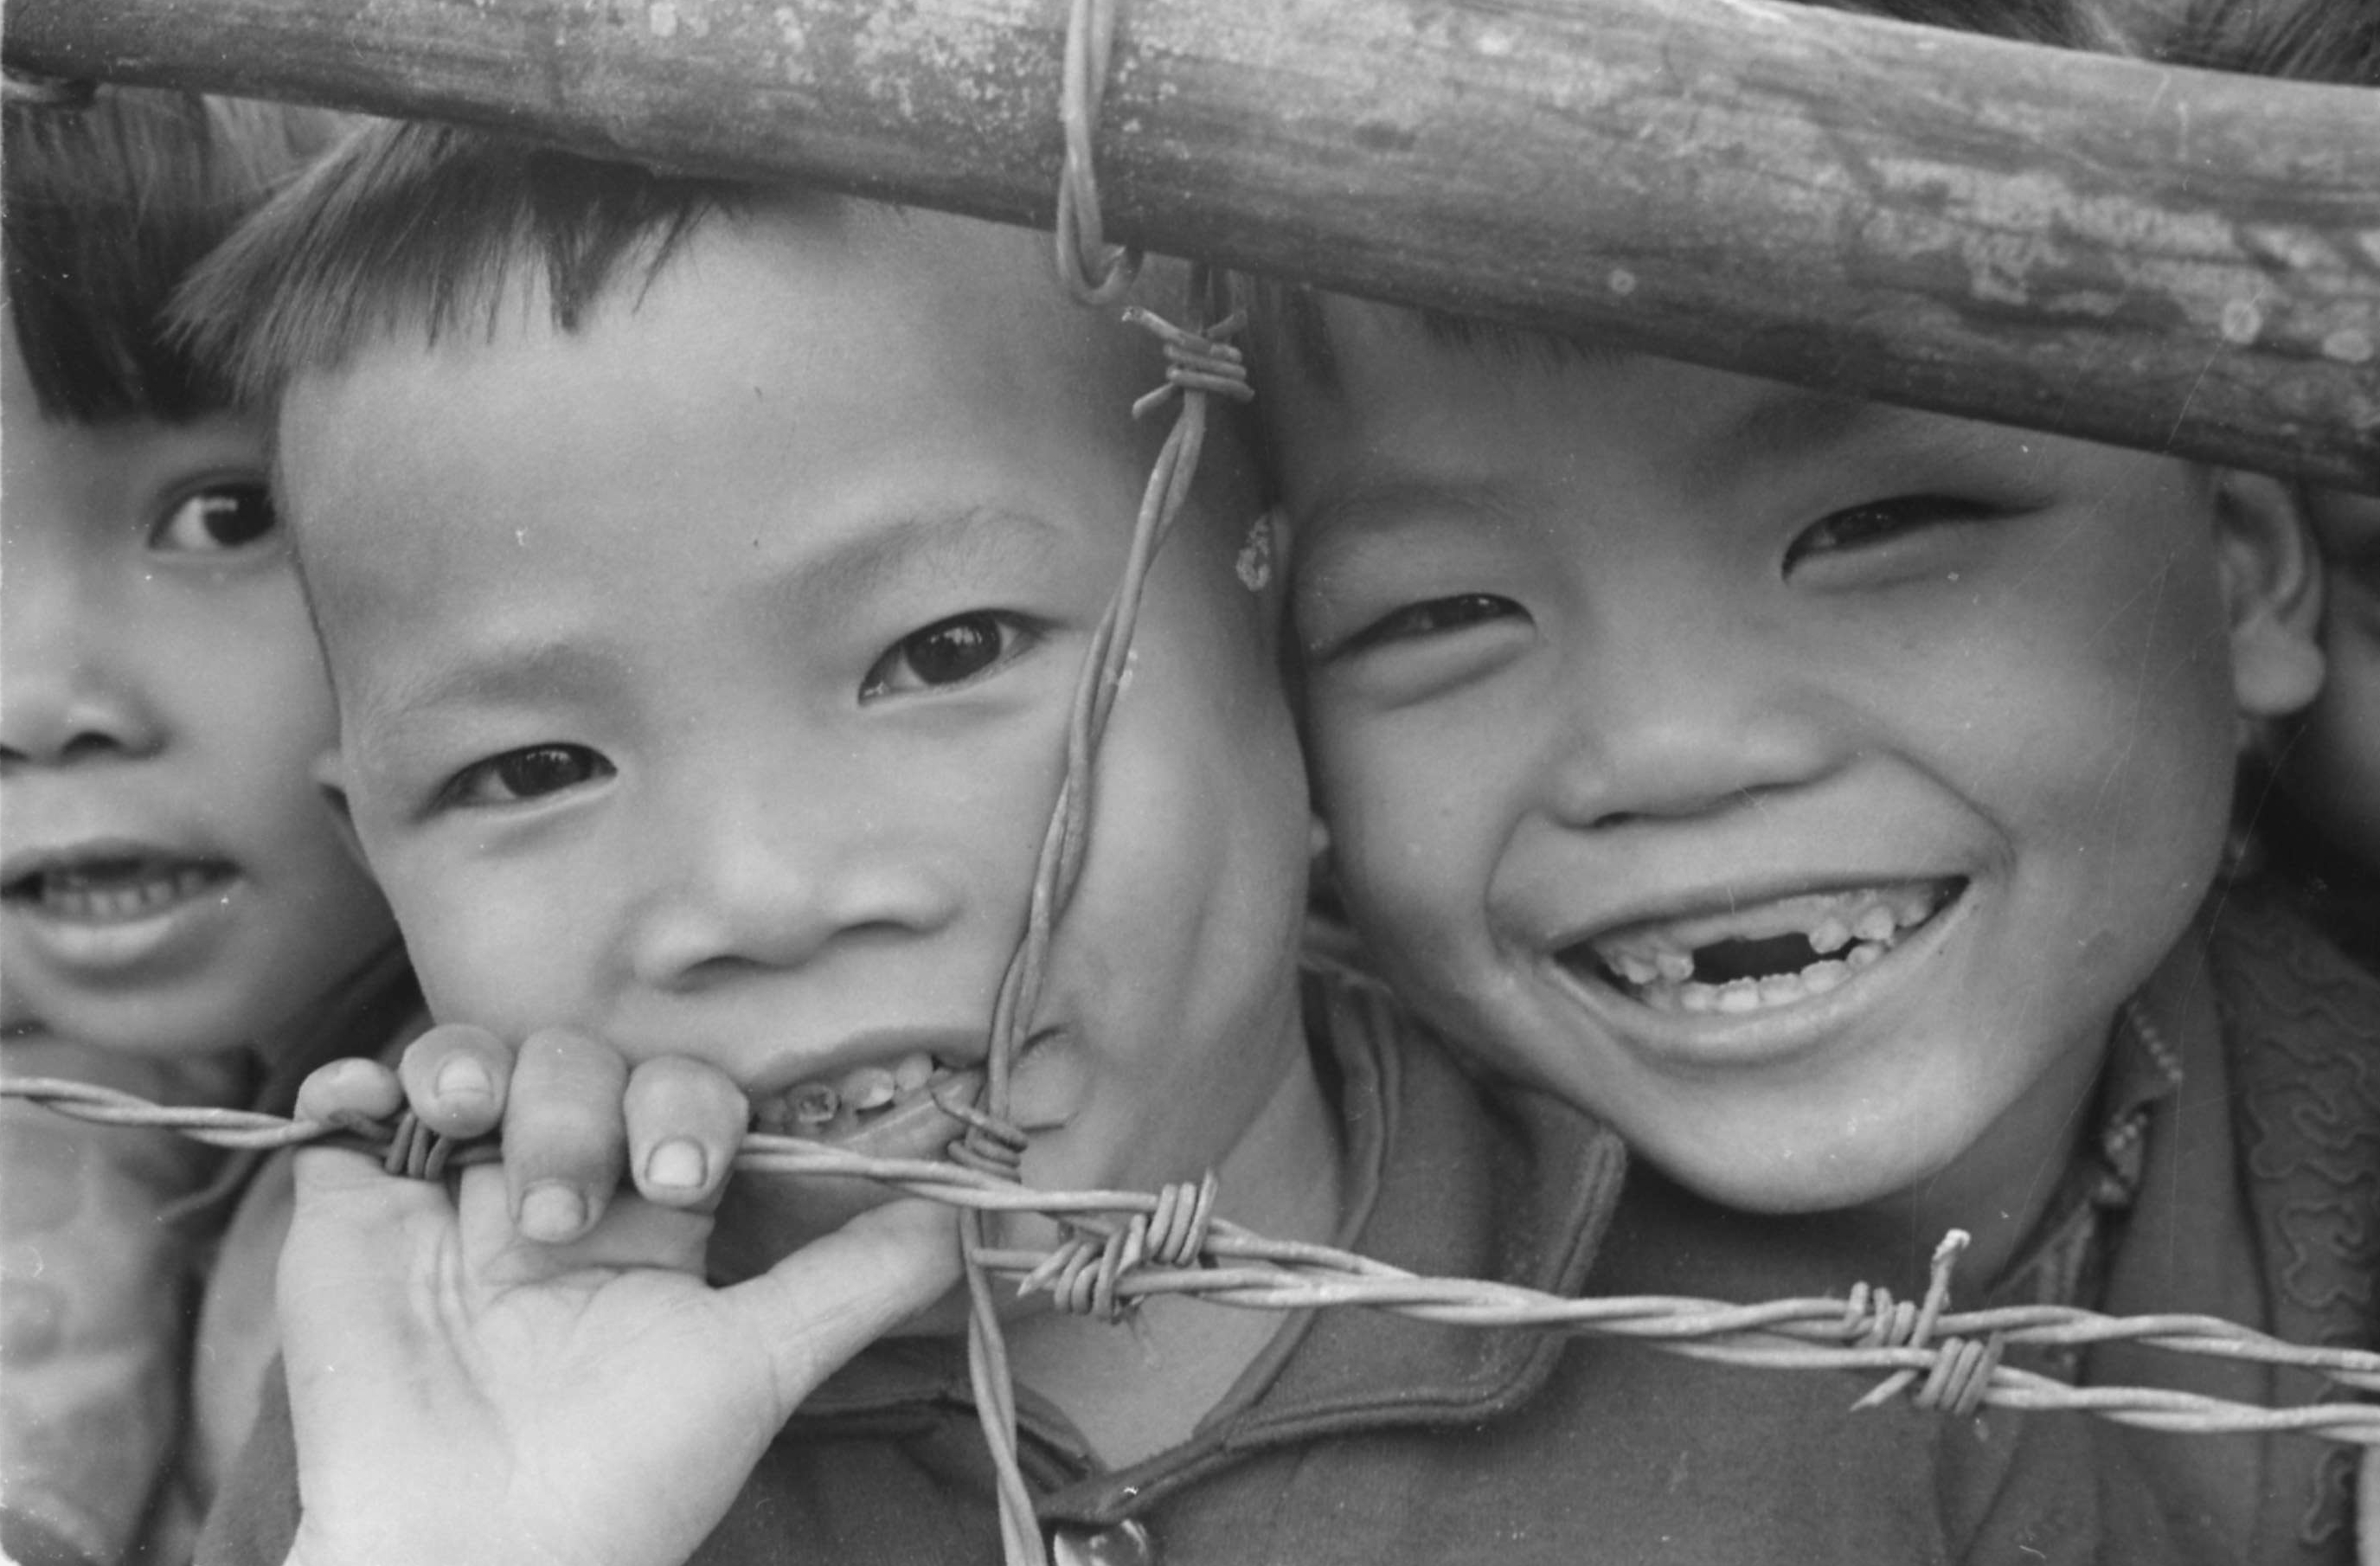 Vietnamese Children of the Phong Dien Refugee Hamlet